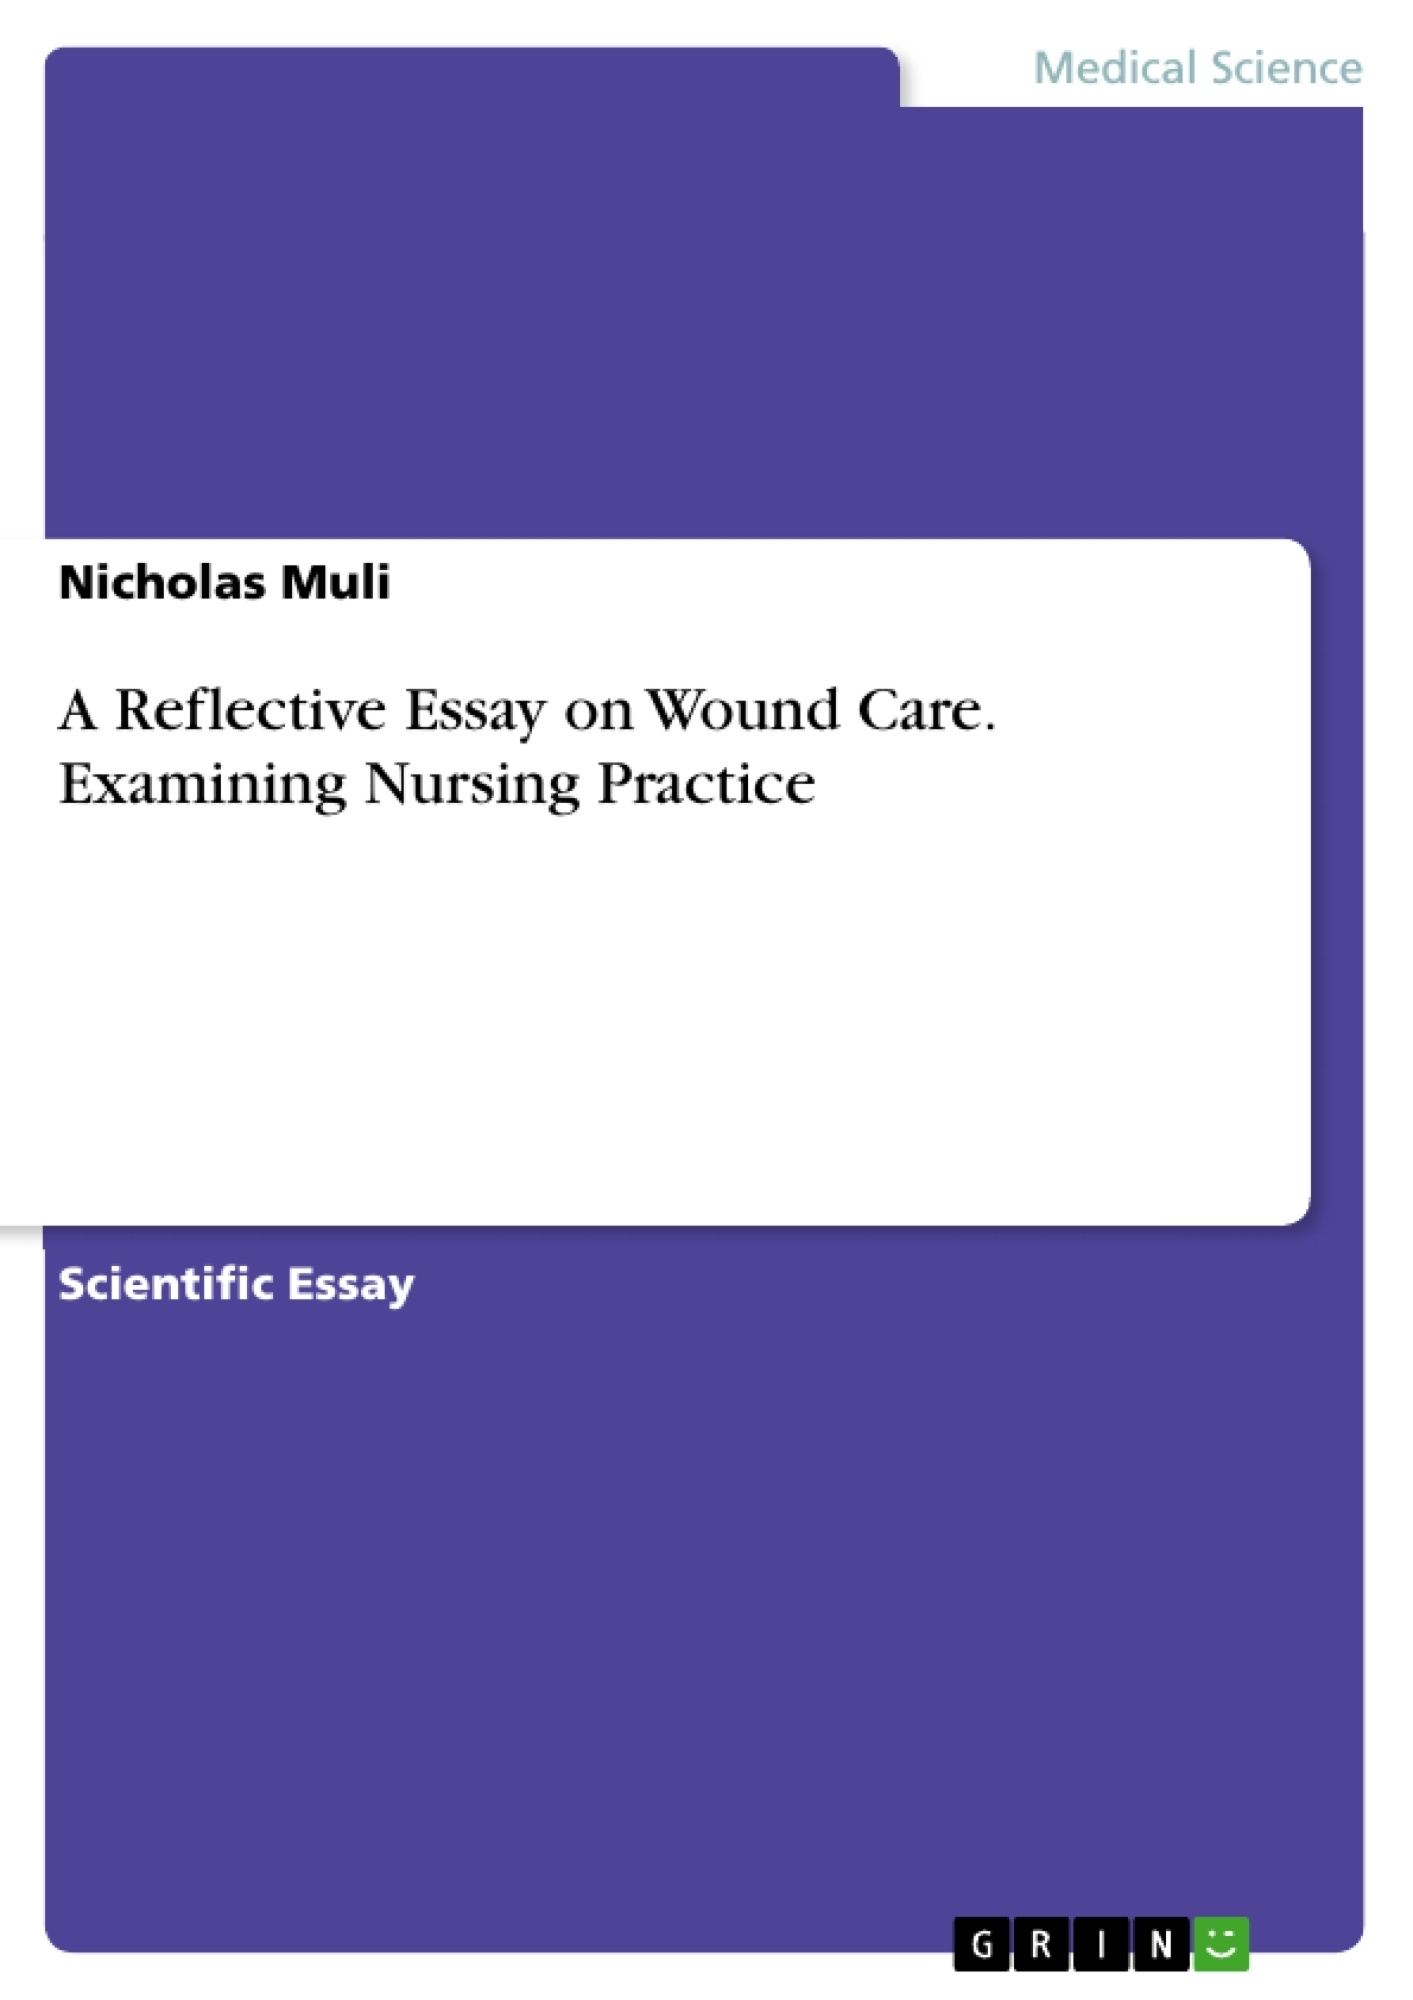 nursing profession essay essays about nursing research career  a reflective essay on wound care examining nursing practice upload your own papers earn money and